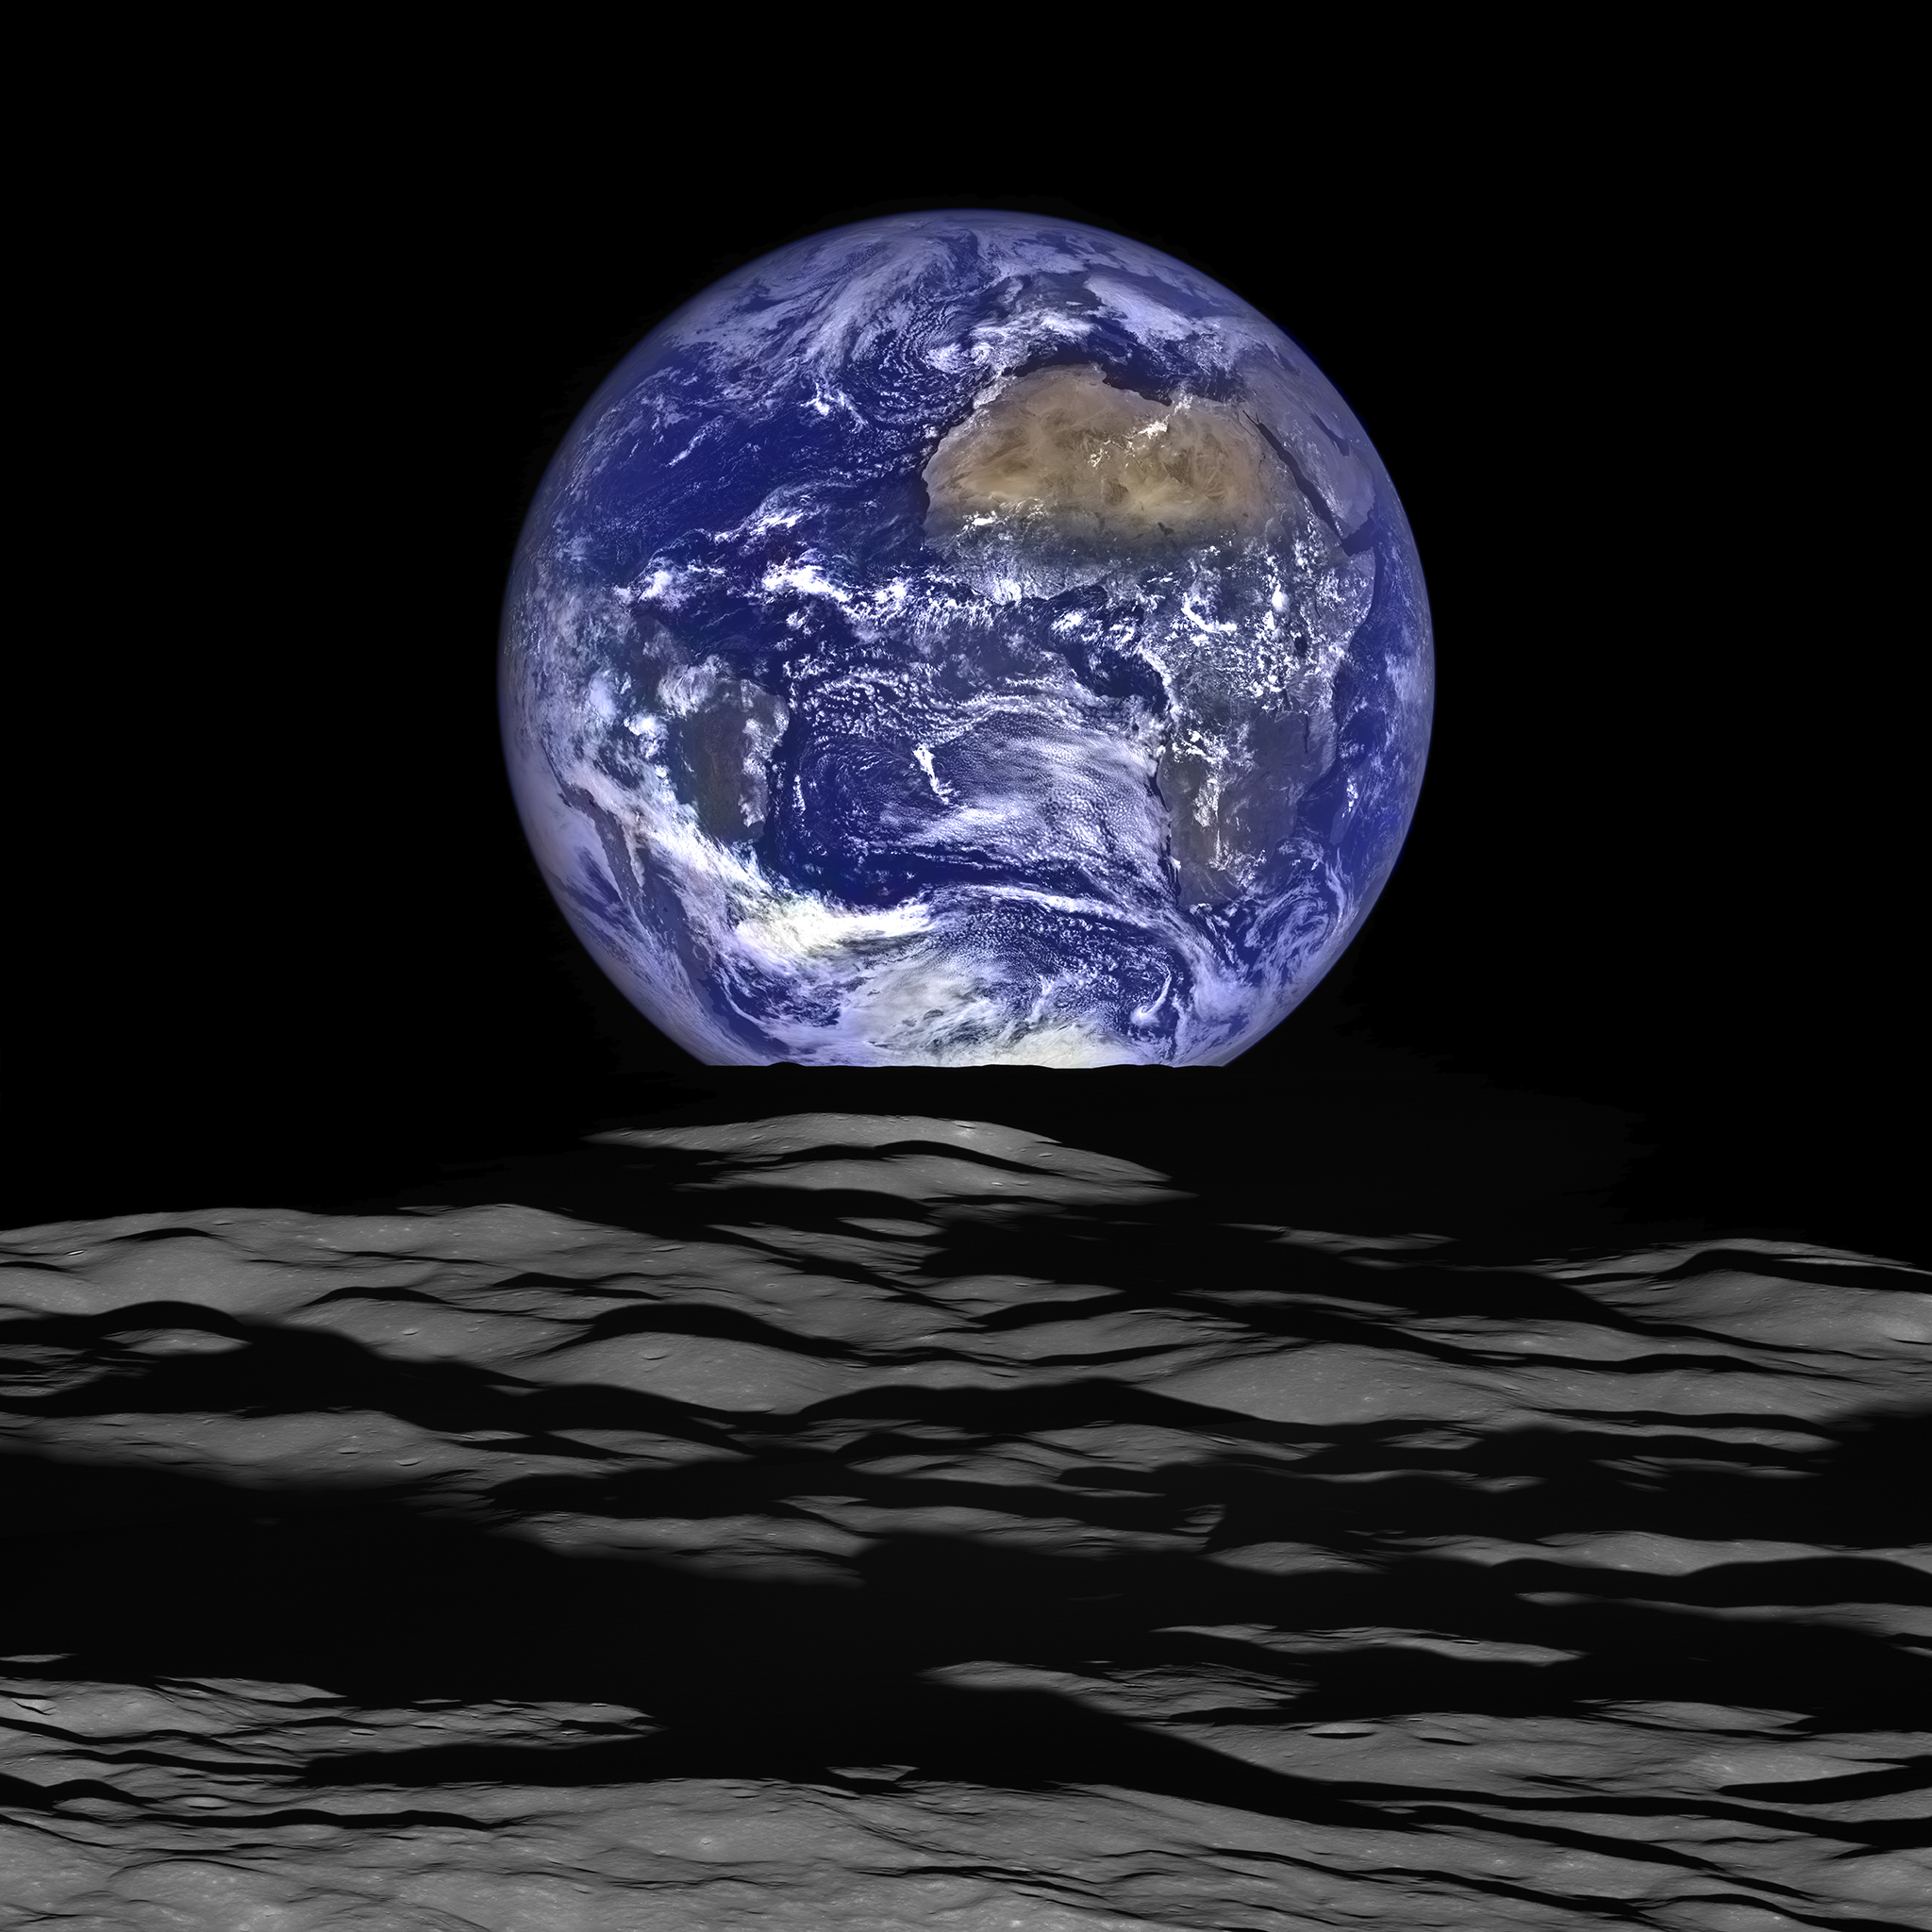 NASA's Lunar Reconnaissance Orbiter (LRO) recently captured a unique view of Earth from the spacecraft's vantage point in orbit around the moon.